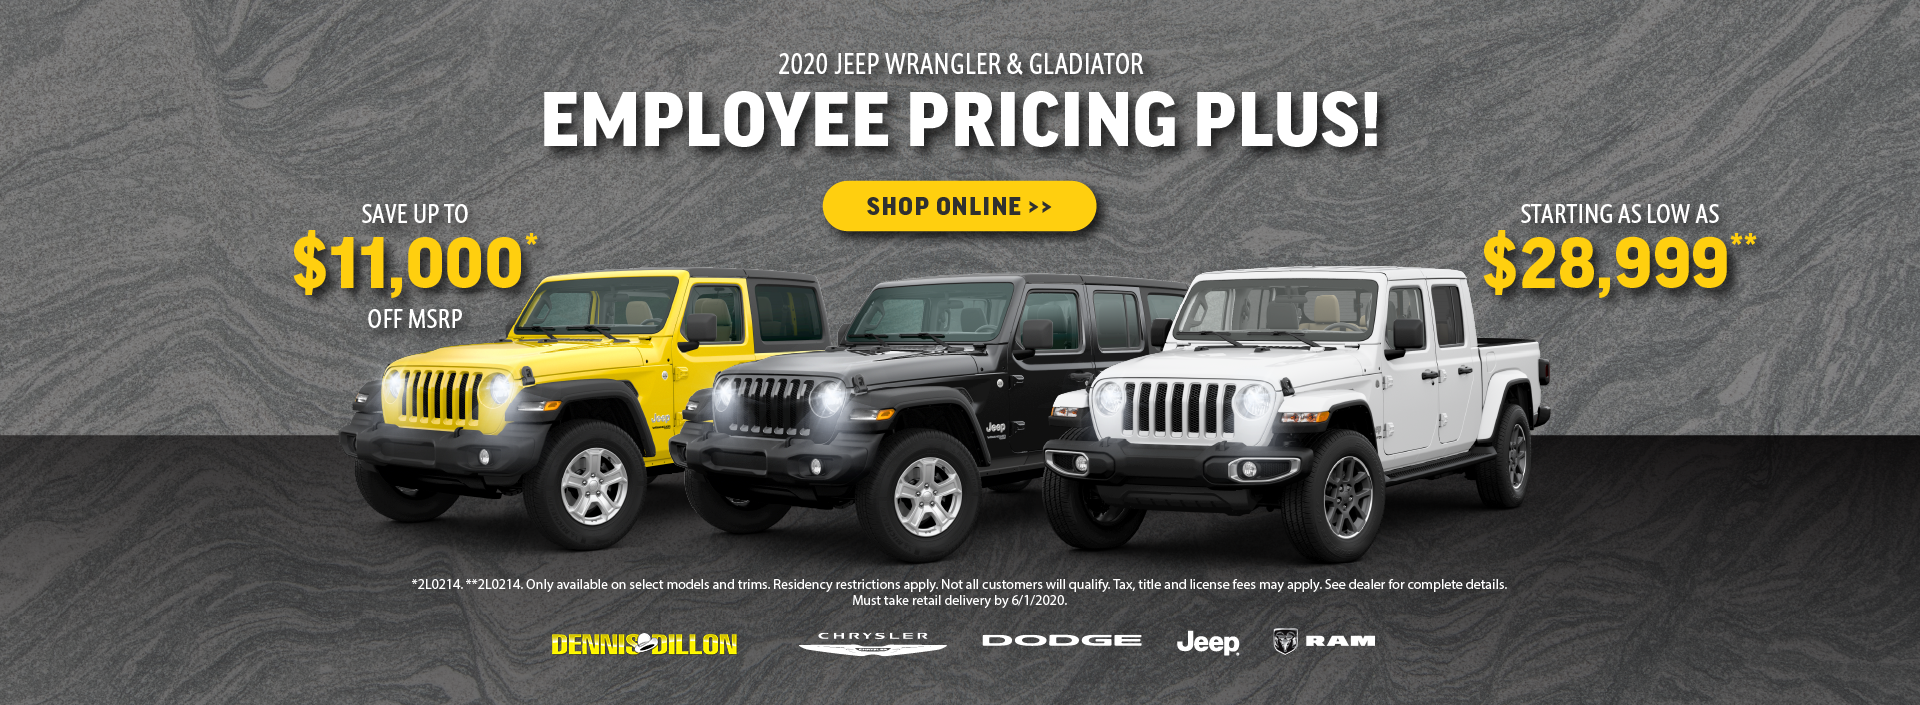 2020 Jeep Wrangler and Gladiator Offer